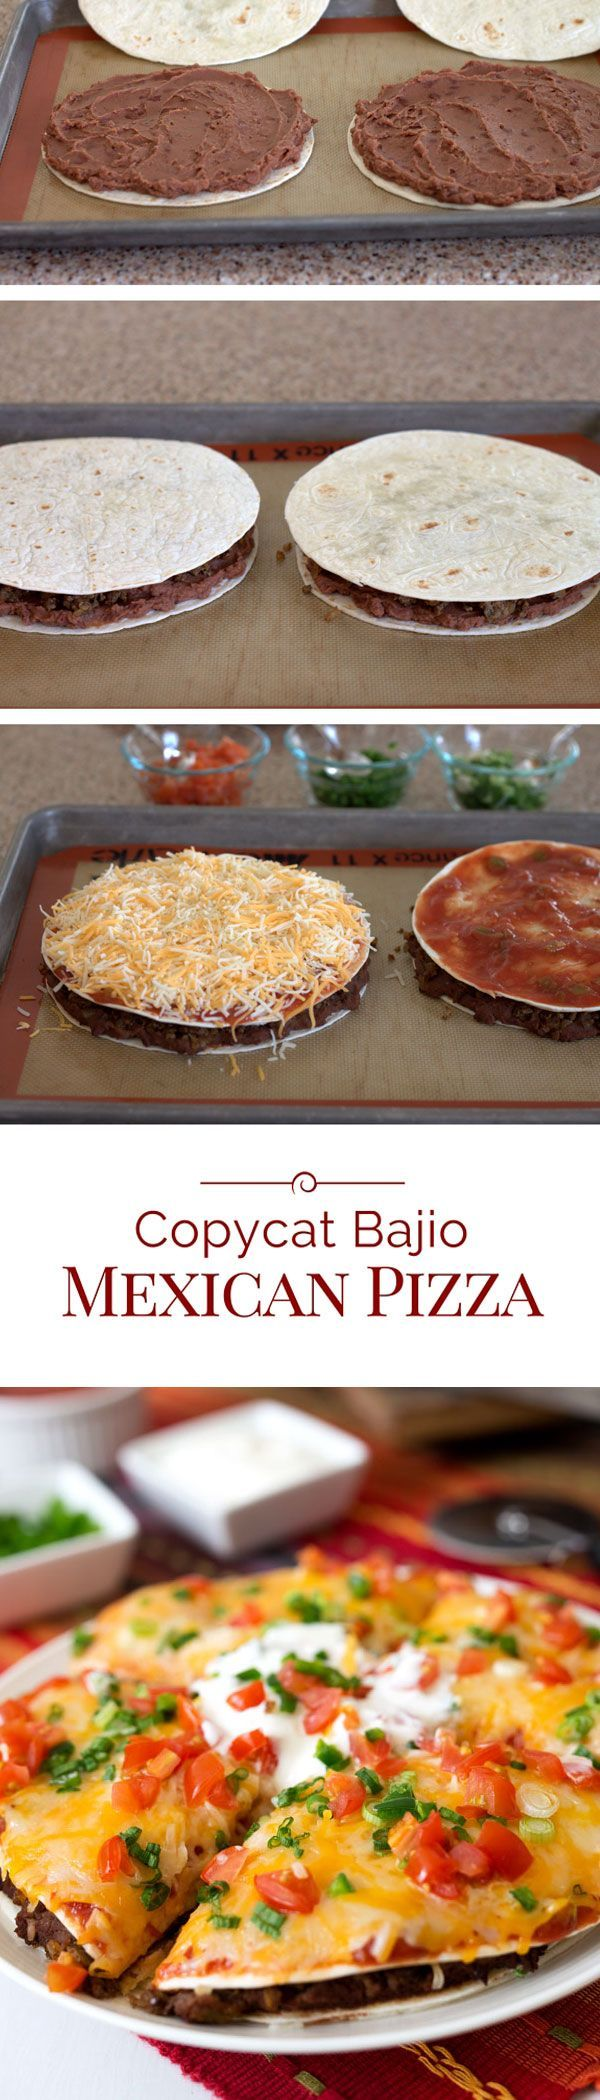 Mexican Pizza - With a layer of refried beans and spicy ground beef sandwiched between two flour tortillas, topped with salsa, shredded cheese, jalapeños, green onions, and tomatoes. Then baked until it's hot, melty and gooey delicious.